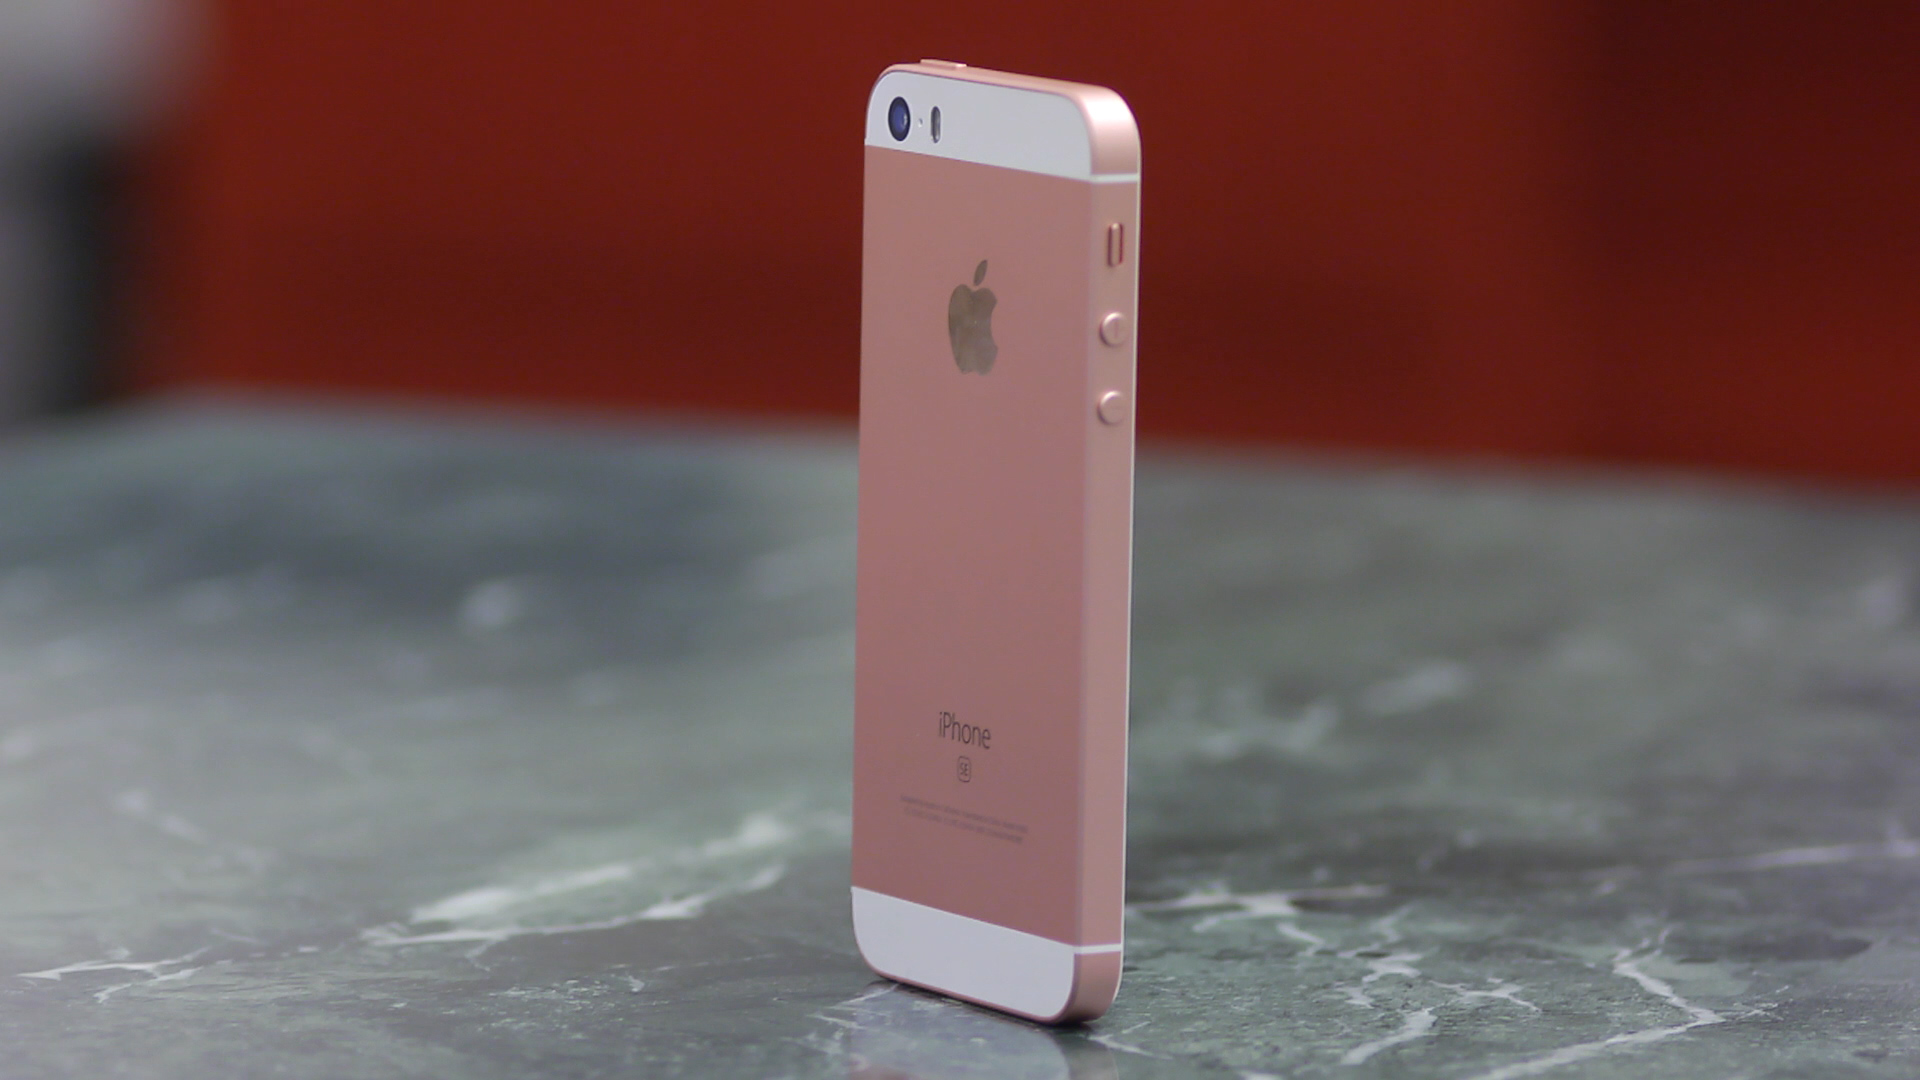 Video: iPhone SE: Does size matter?